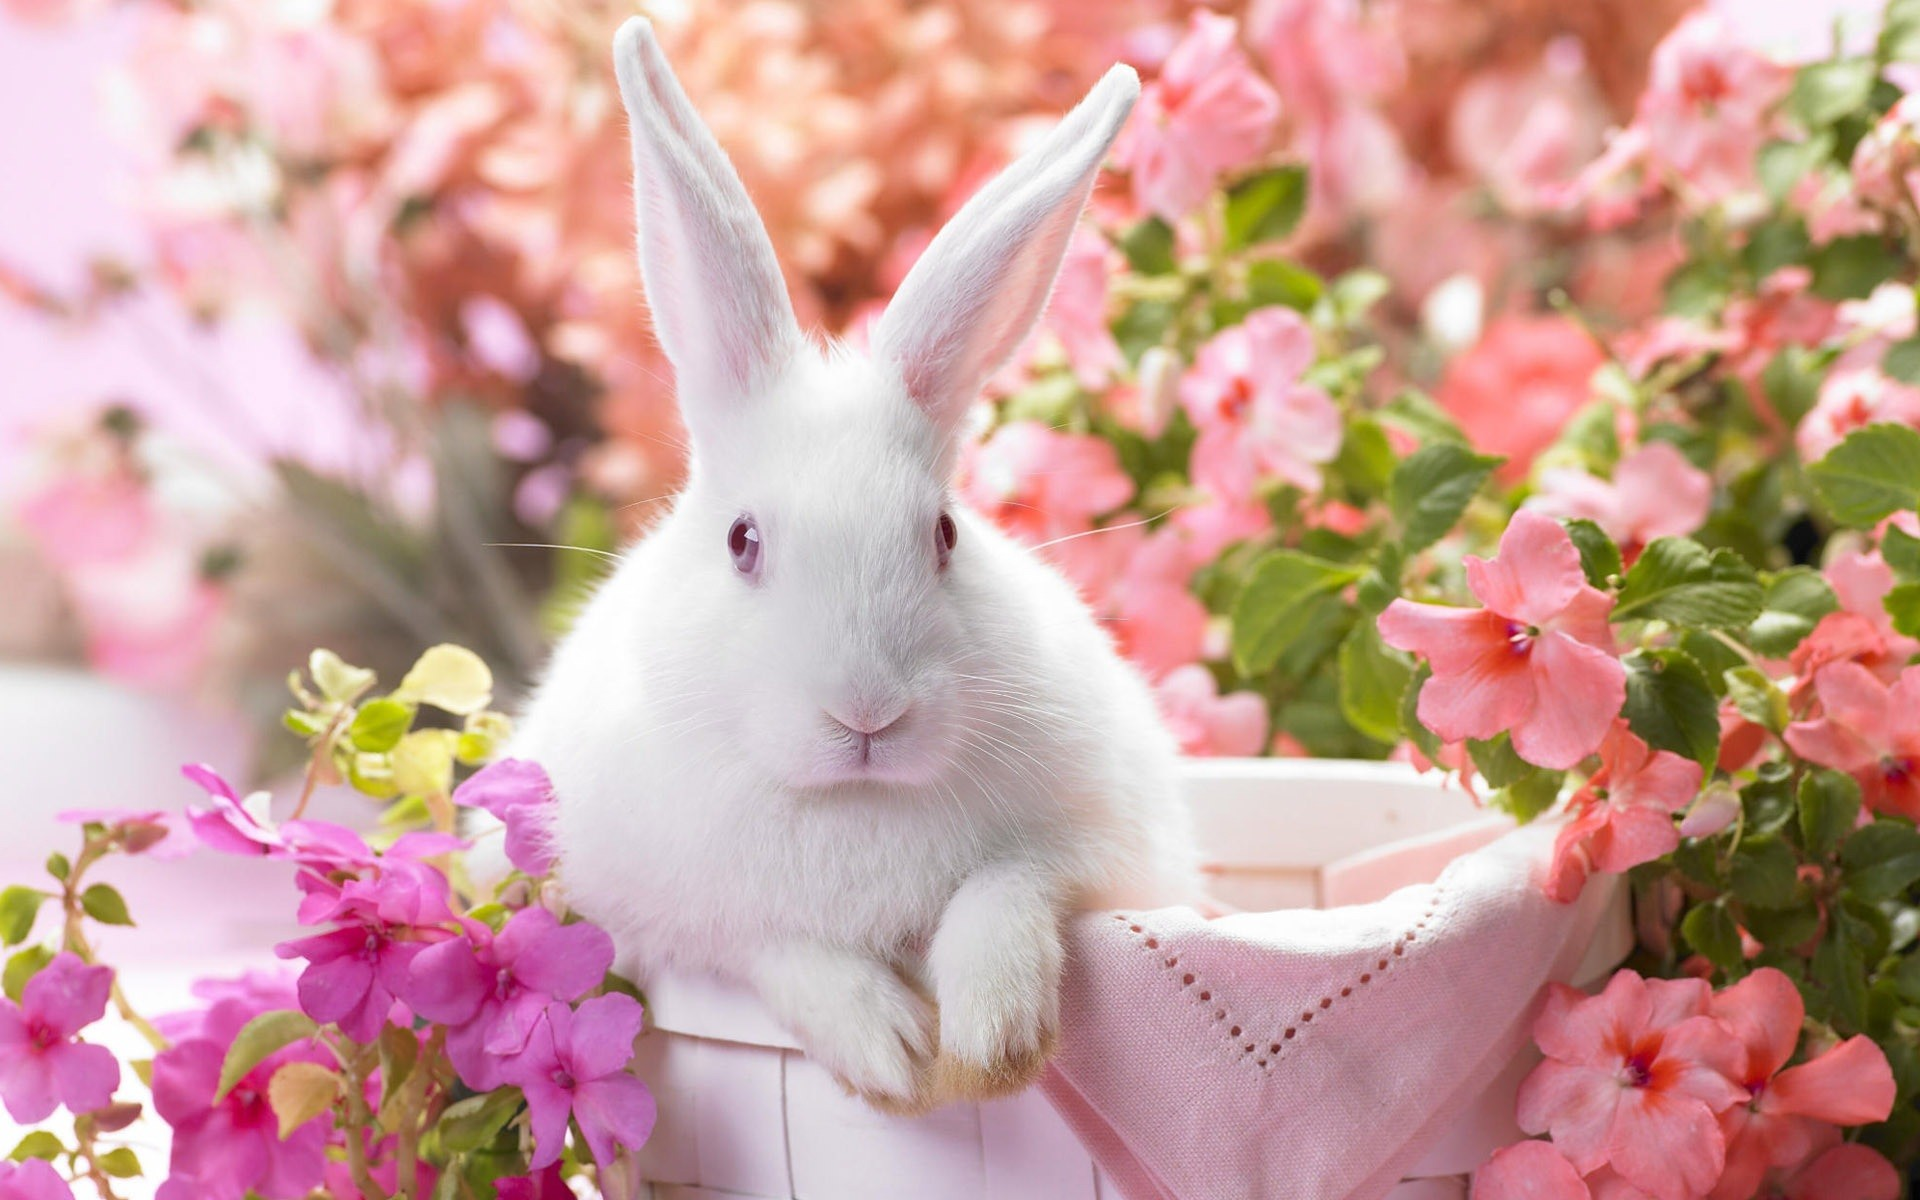 2560x1600 Rabbit Wallpapers Free Download Cute White HD Desktop Wide Images